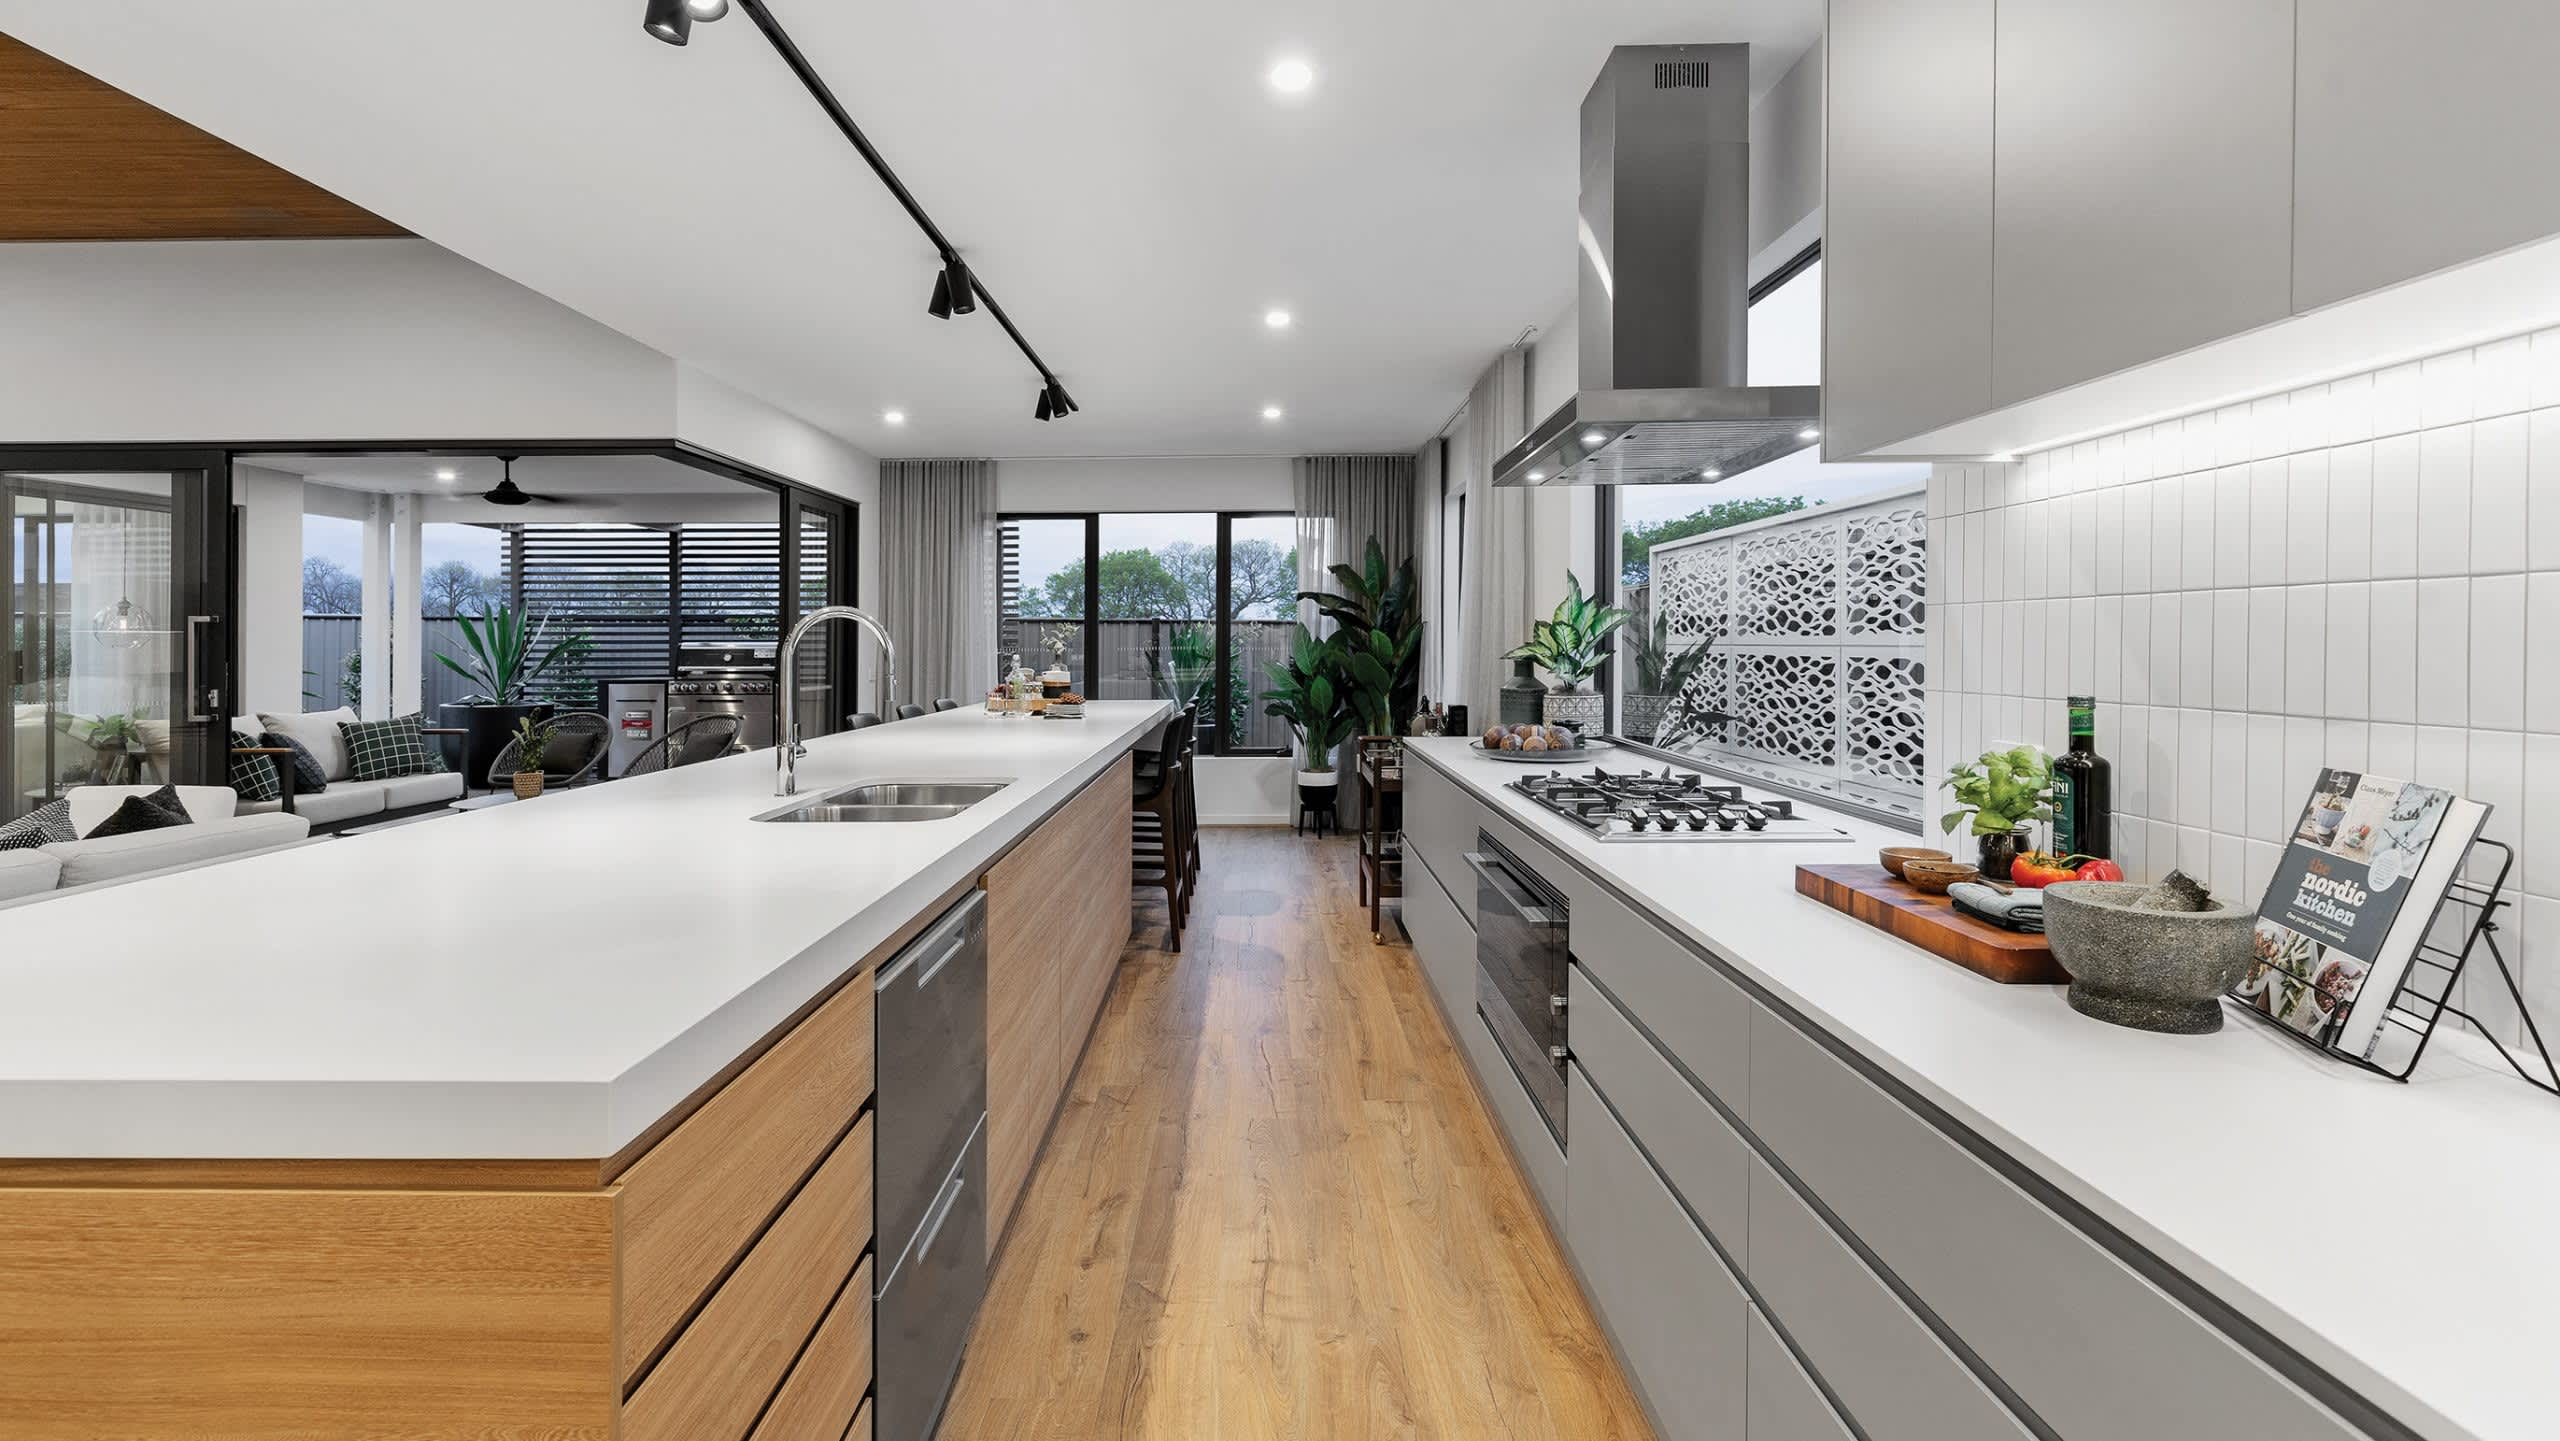 How to work with a galley kitchen design